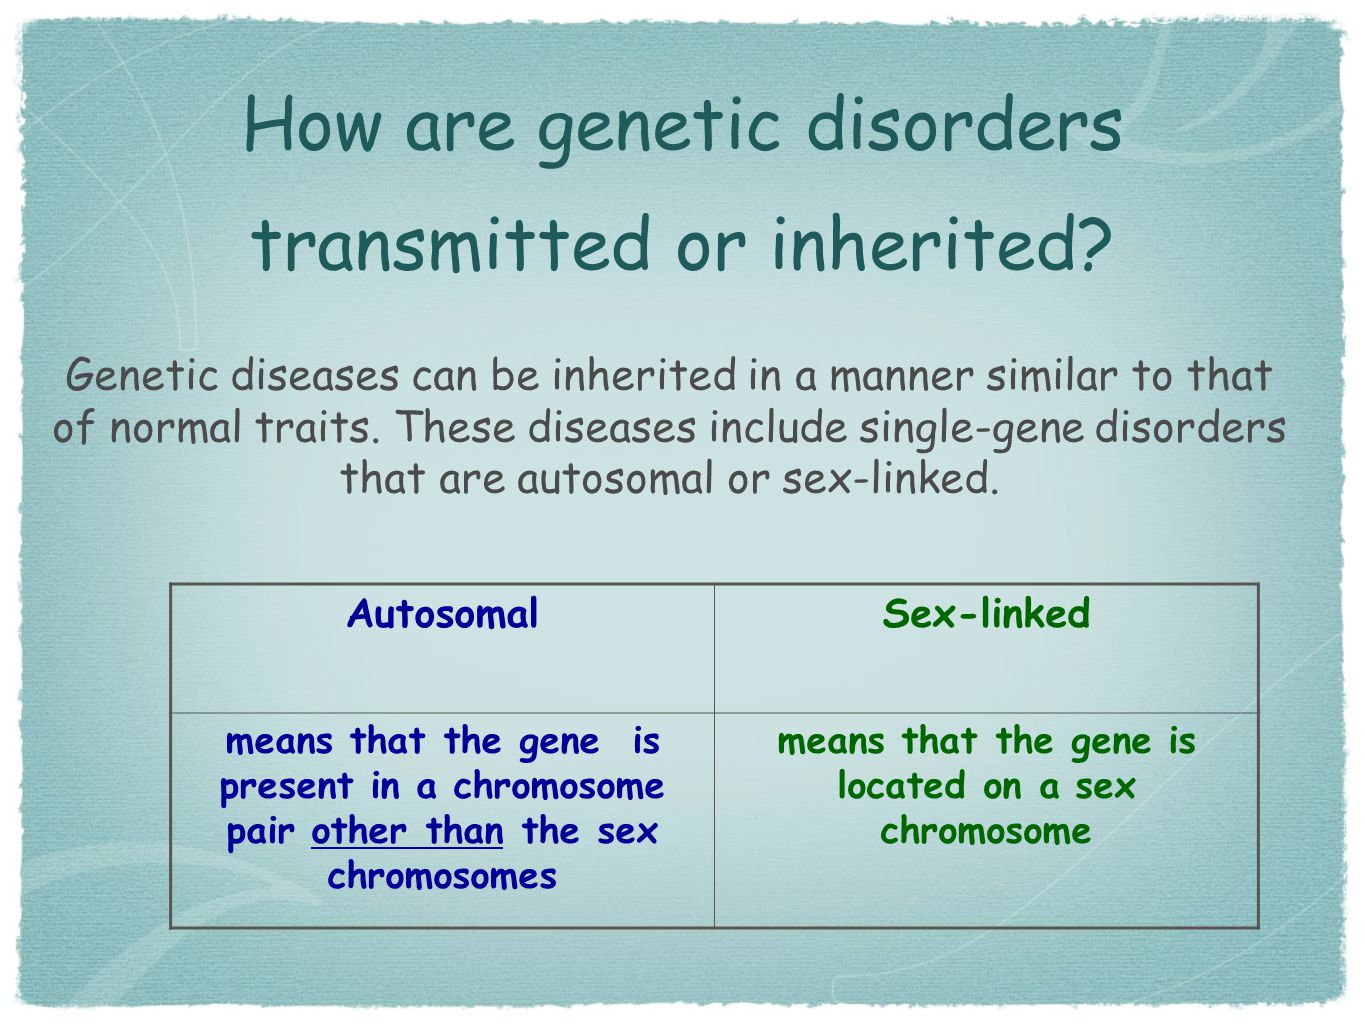 How are genetic disorders transmitted or inherited